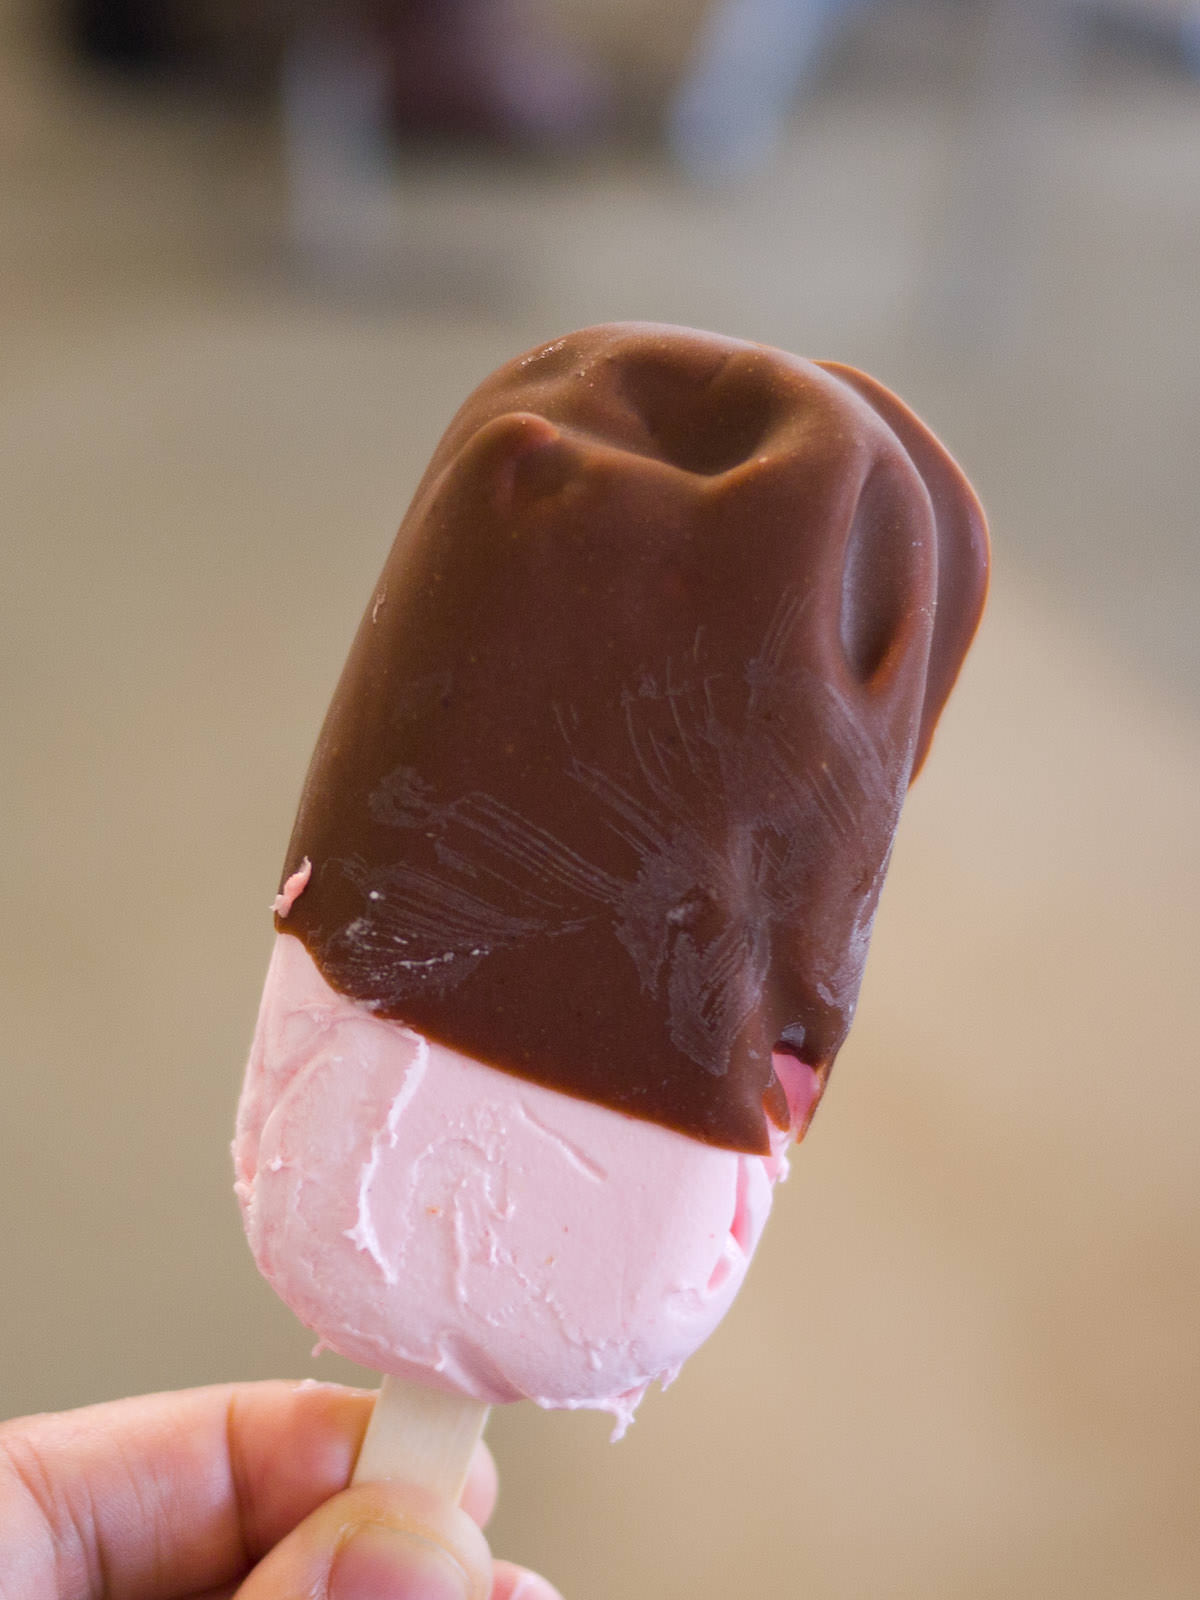 Chocolate-dipped strawberry ice cream